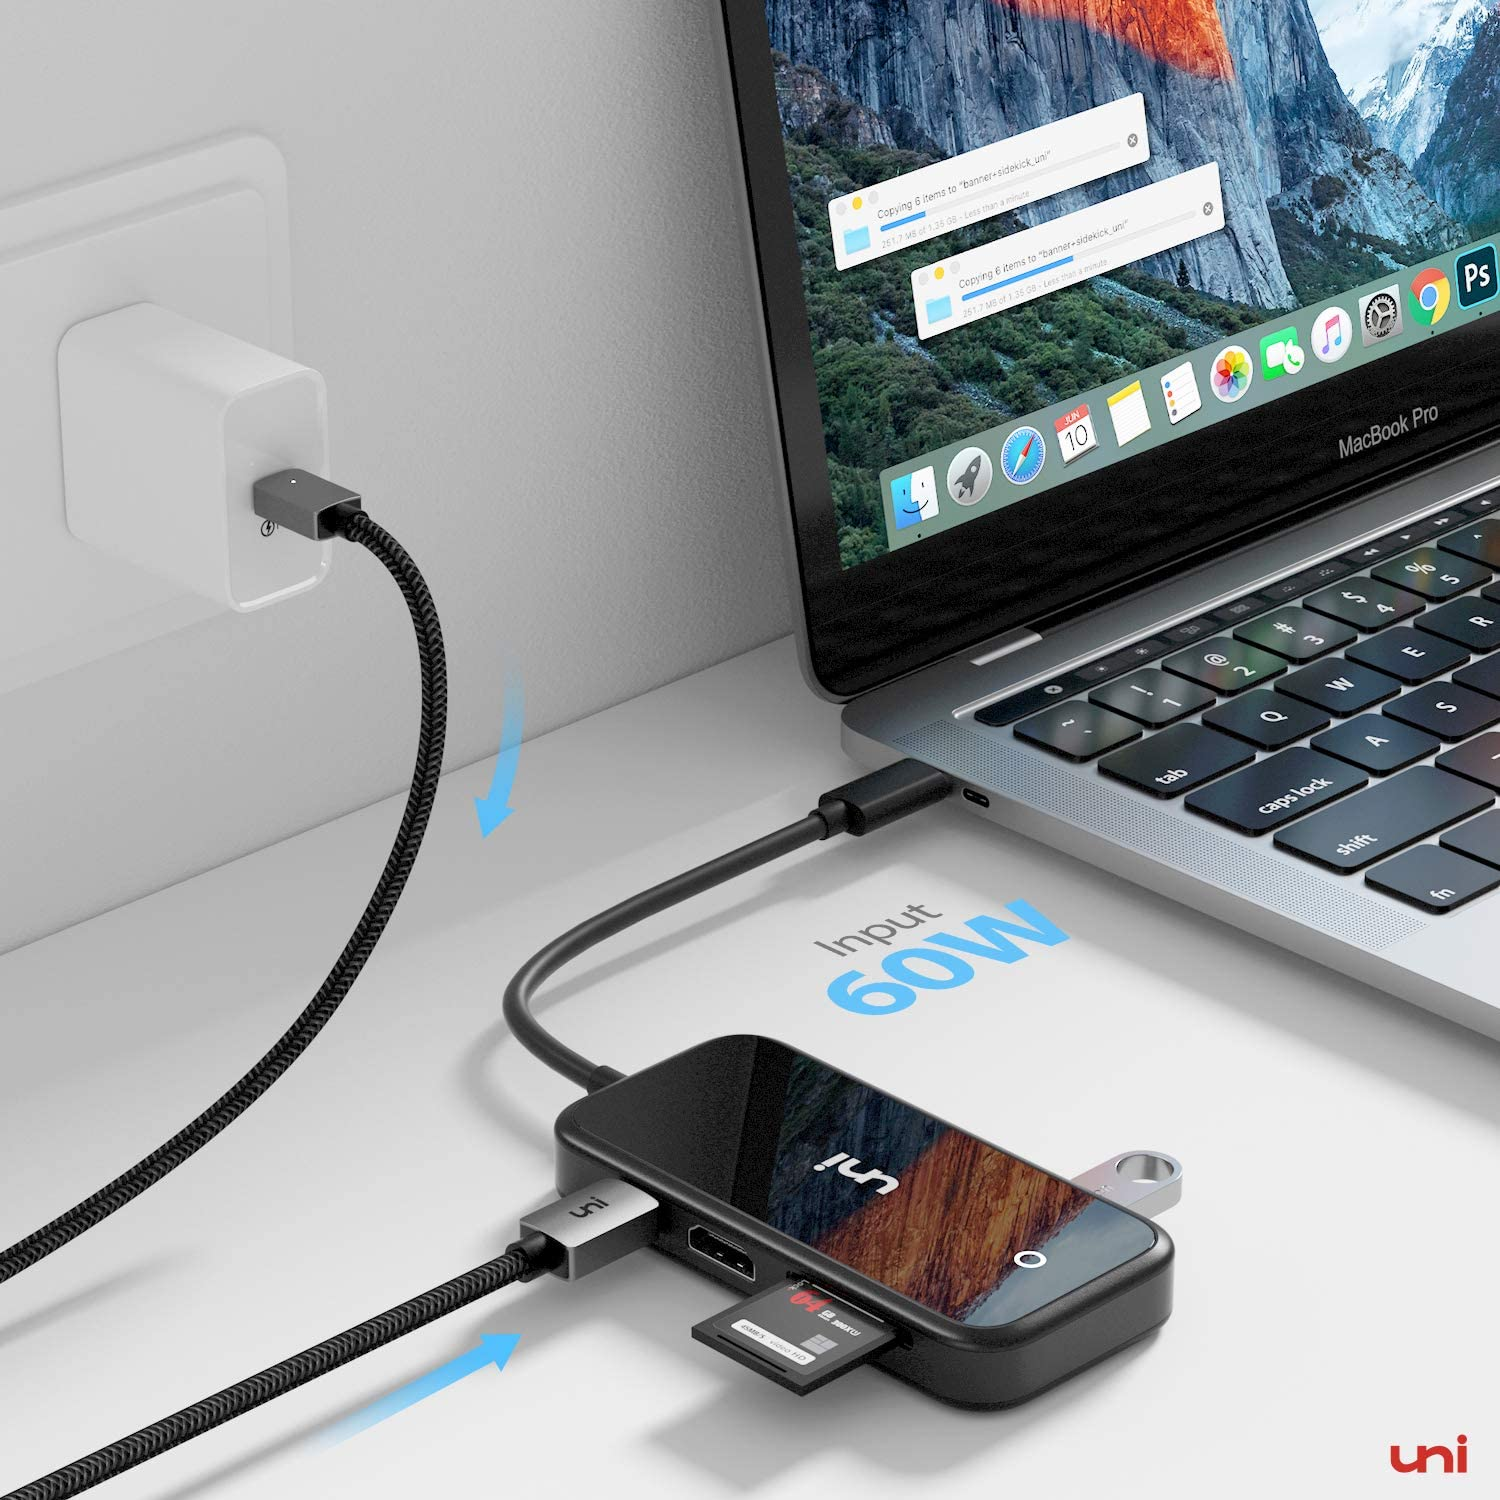 iPad Pro 2018 uni Type-C Multiport Adapter with Enhanced Shielding Black 4K Compatible for iPad Air 2020 USB-C Hub 7 in 1 SD//MicroSD USB 3.0 MacBook Pro Chromebook and More Surface Pro 7